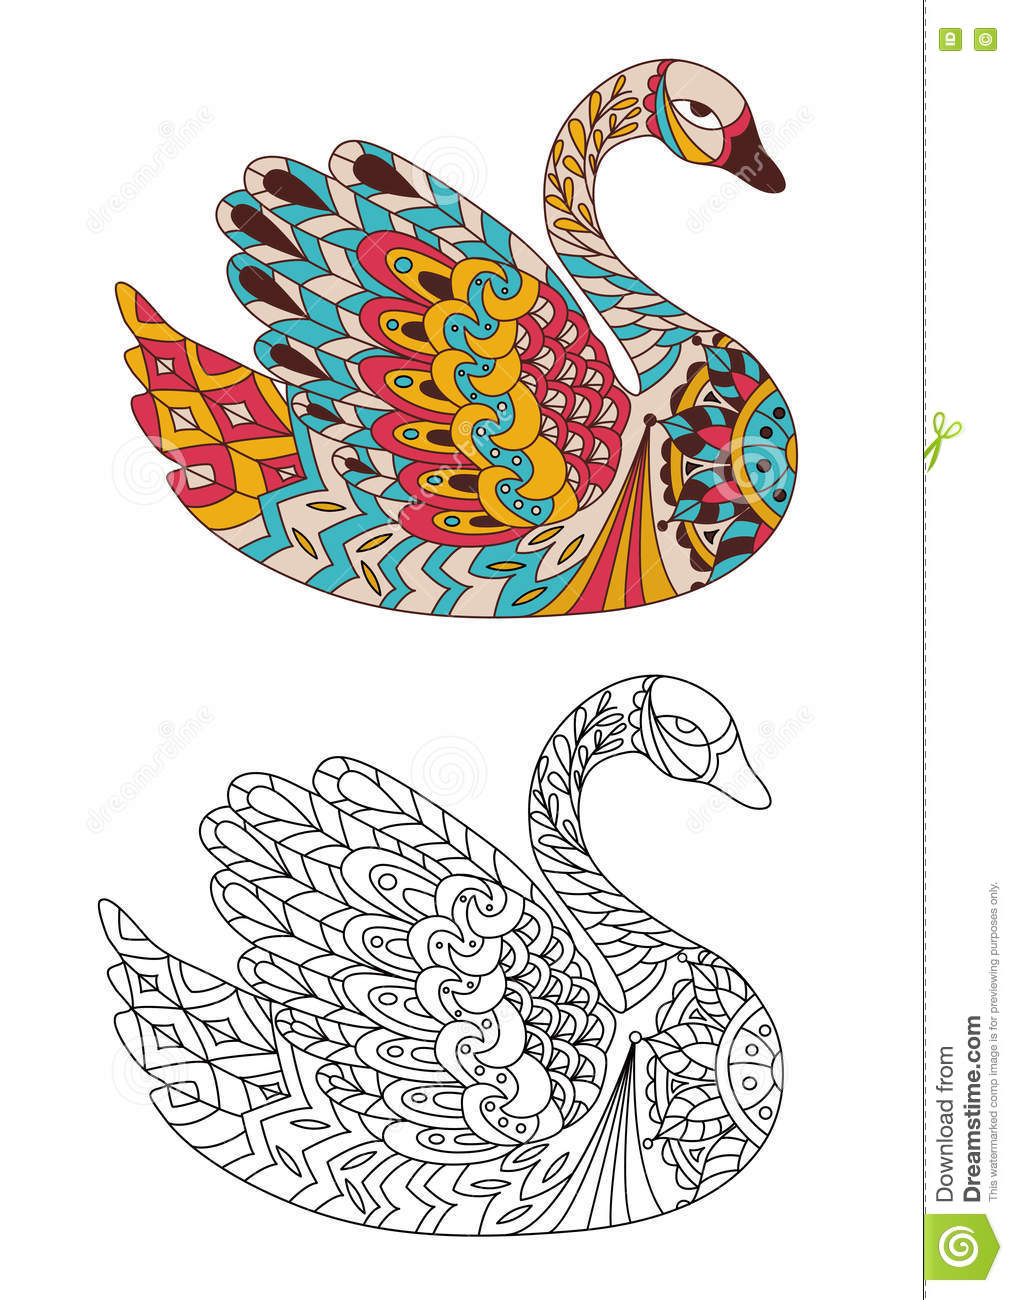 Printable Coloring Book Page For Adults Swan Design Activity To